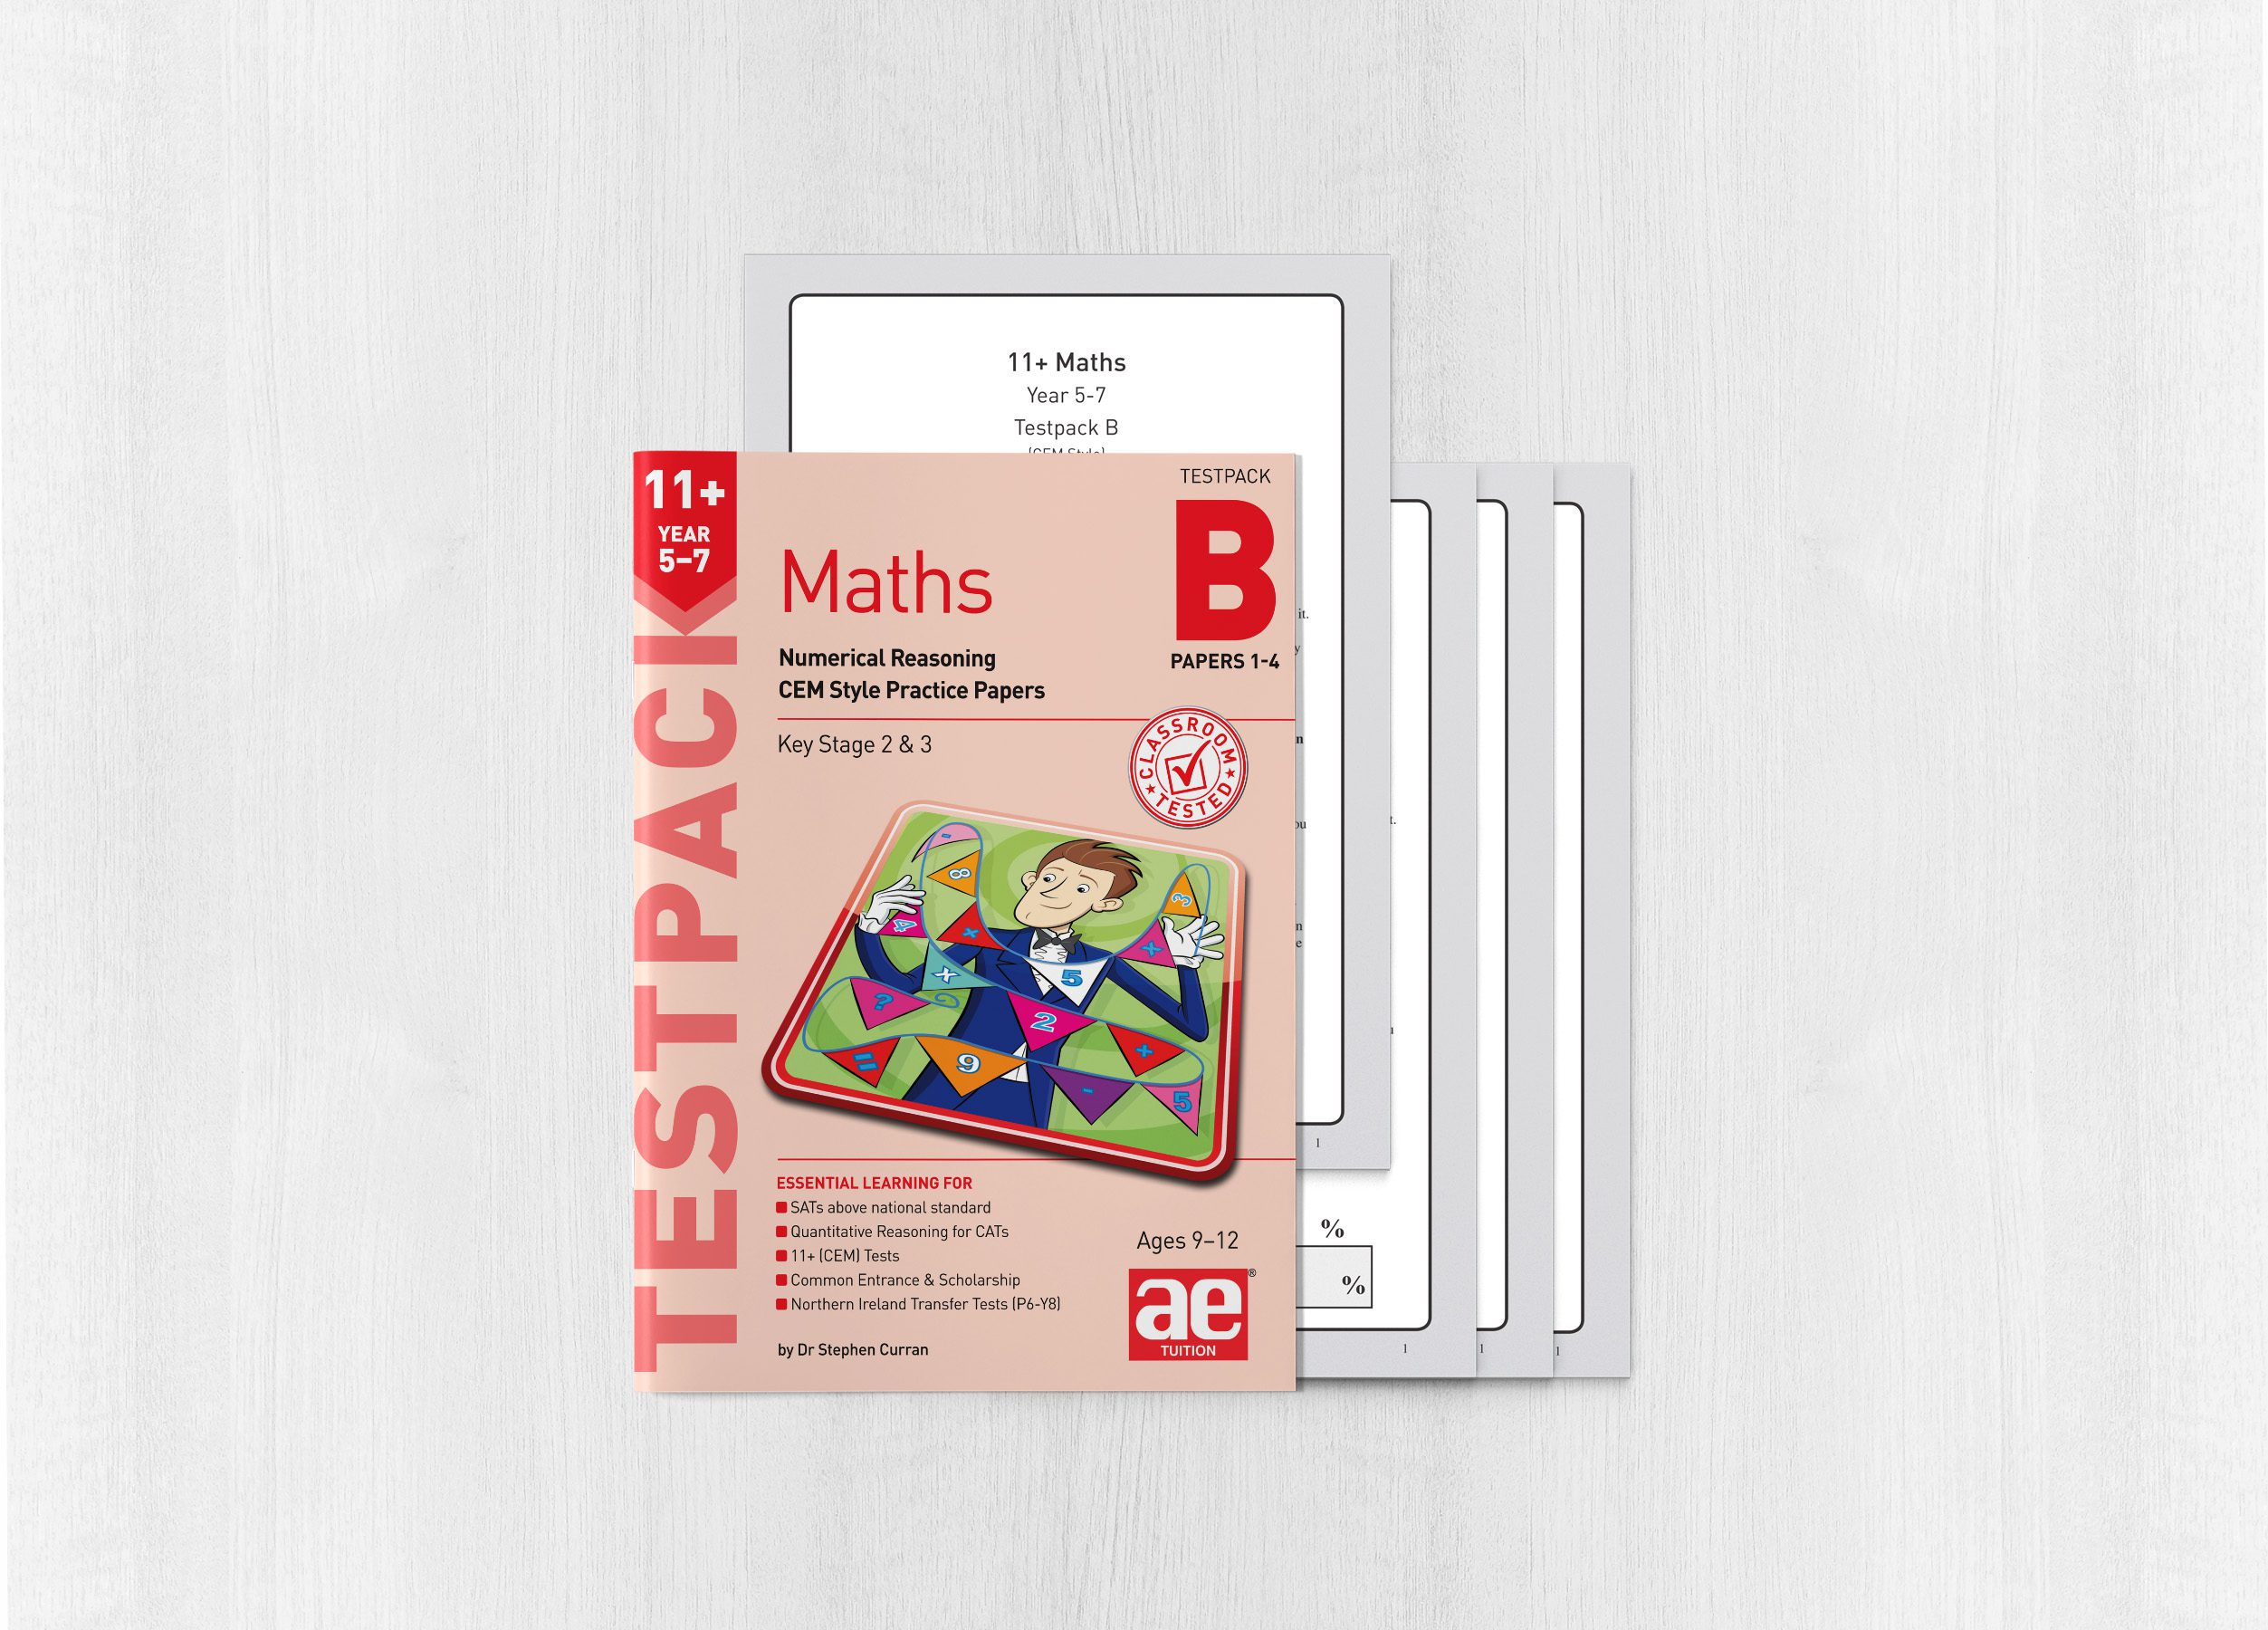 11+ Maths Year 5-7 Testpack B Papers 1-4 - AE Publications